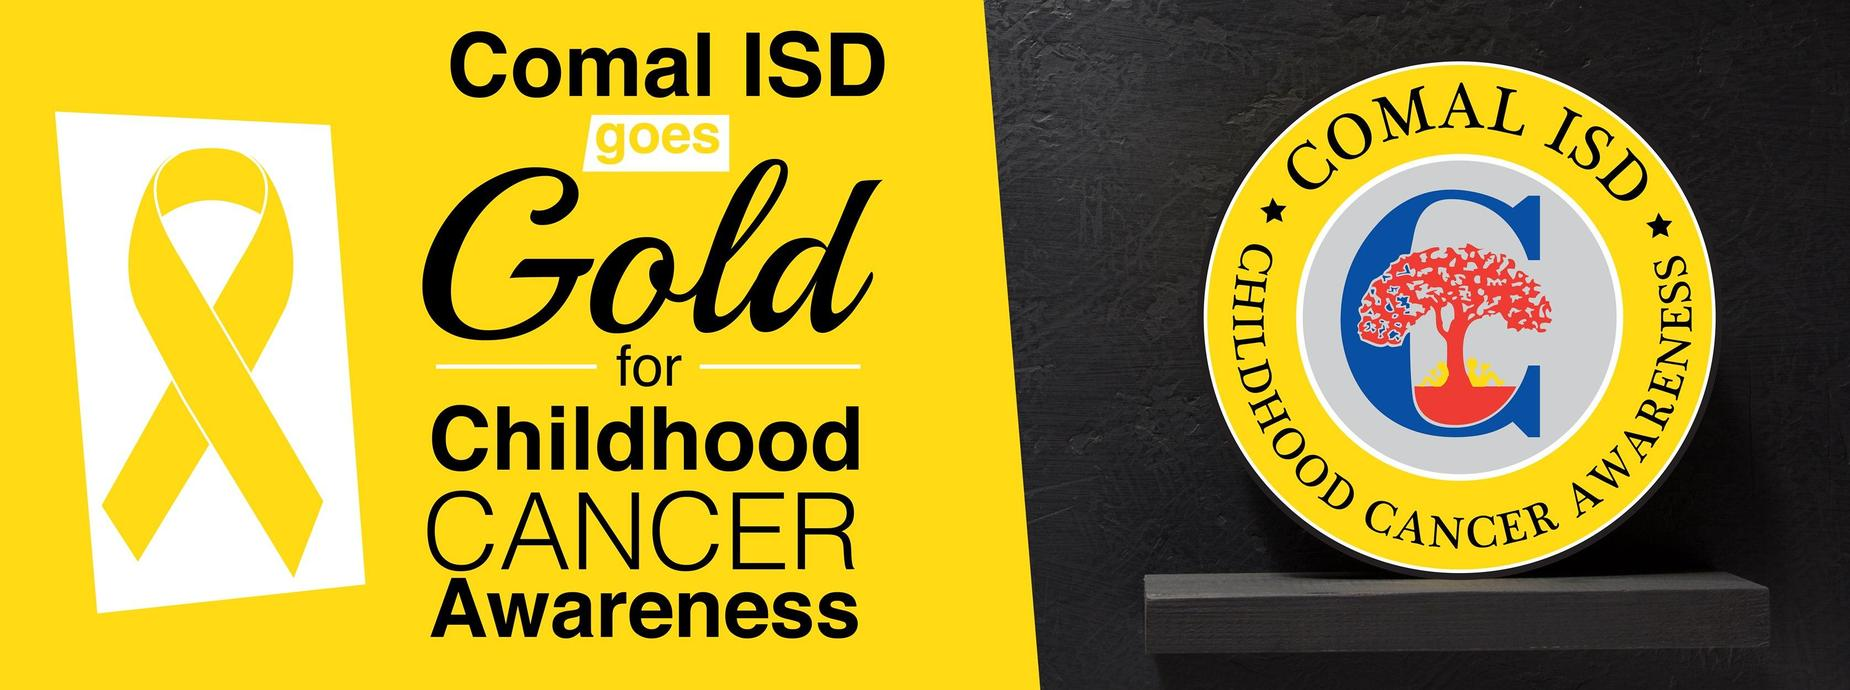 Comal ISD goes gold